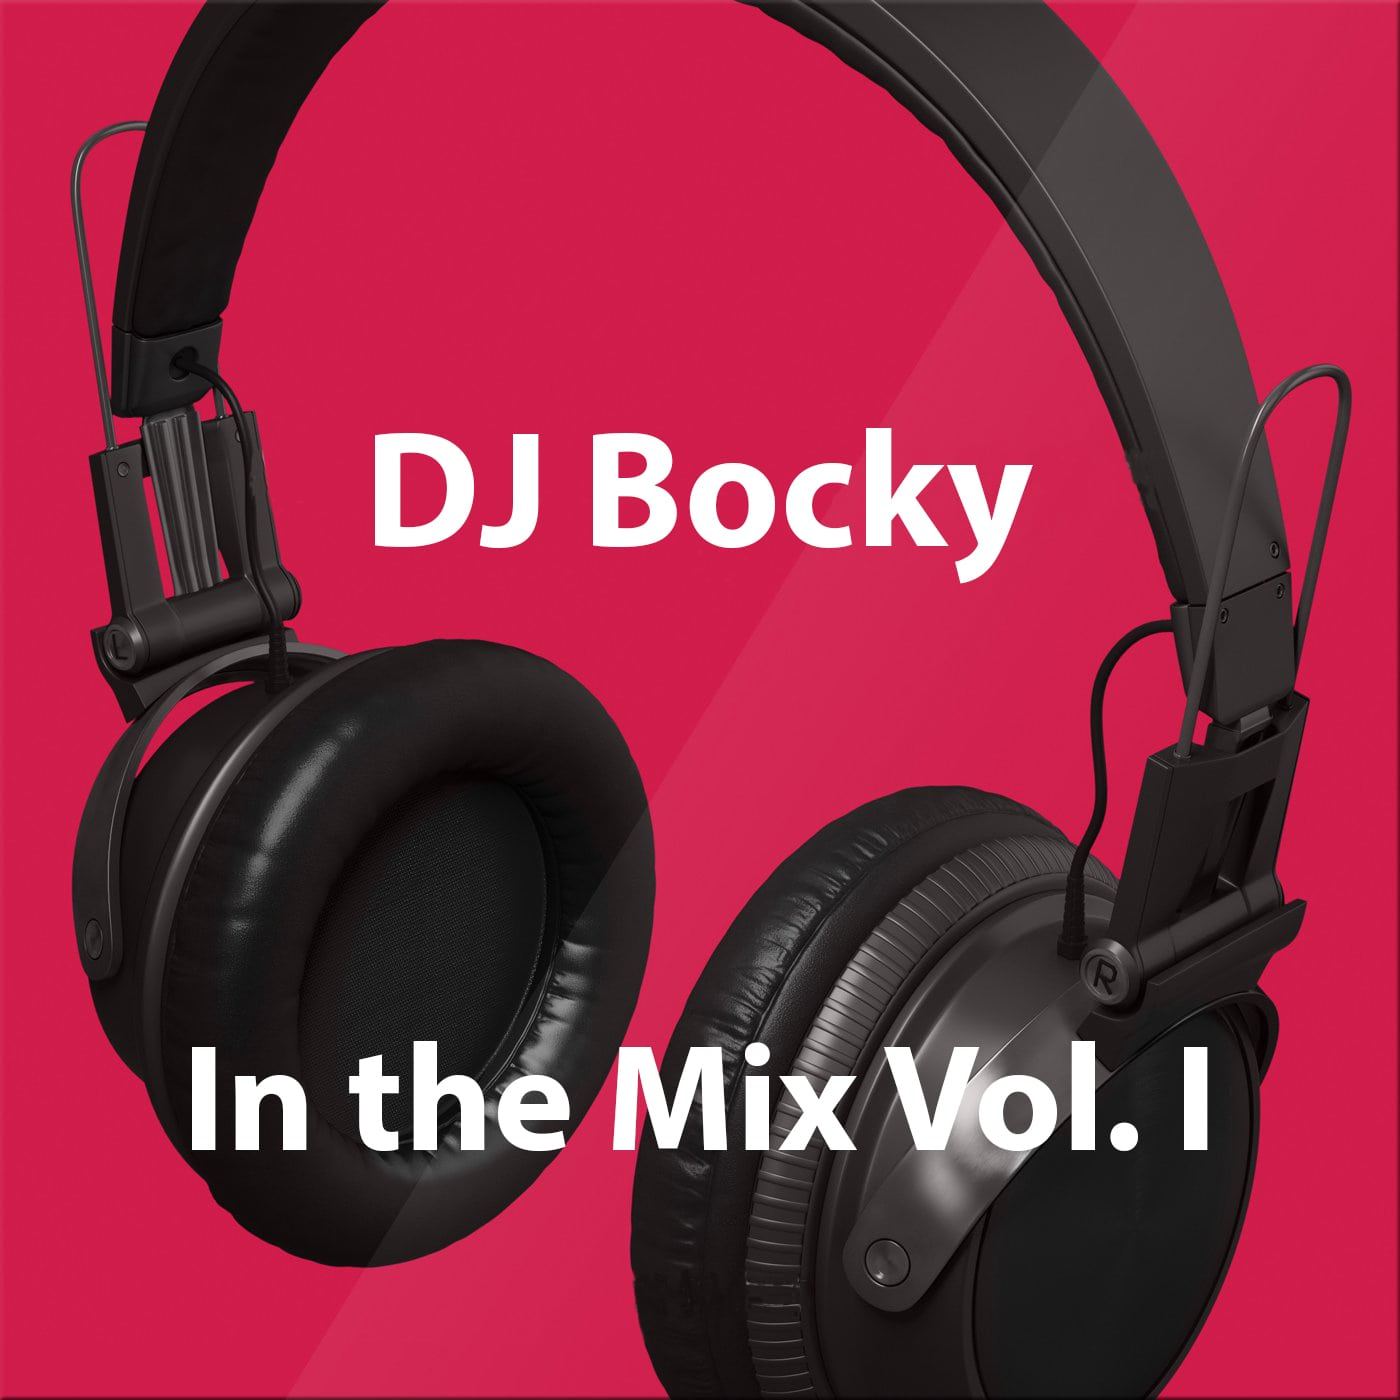 DJ Bocky in the Mix